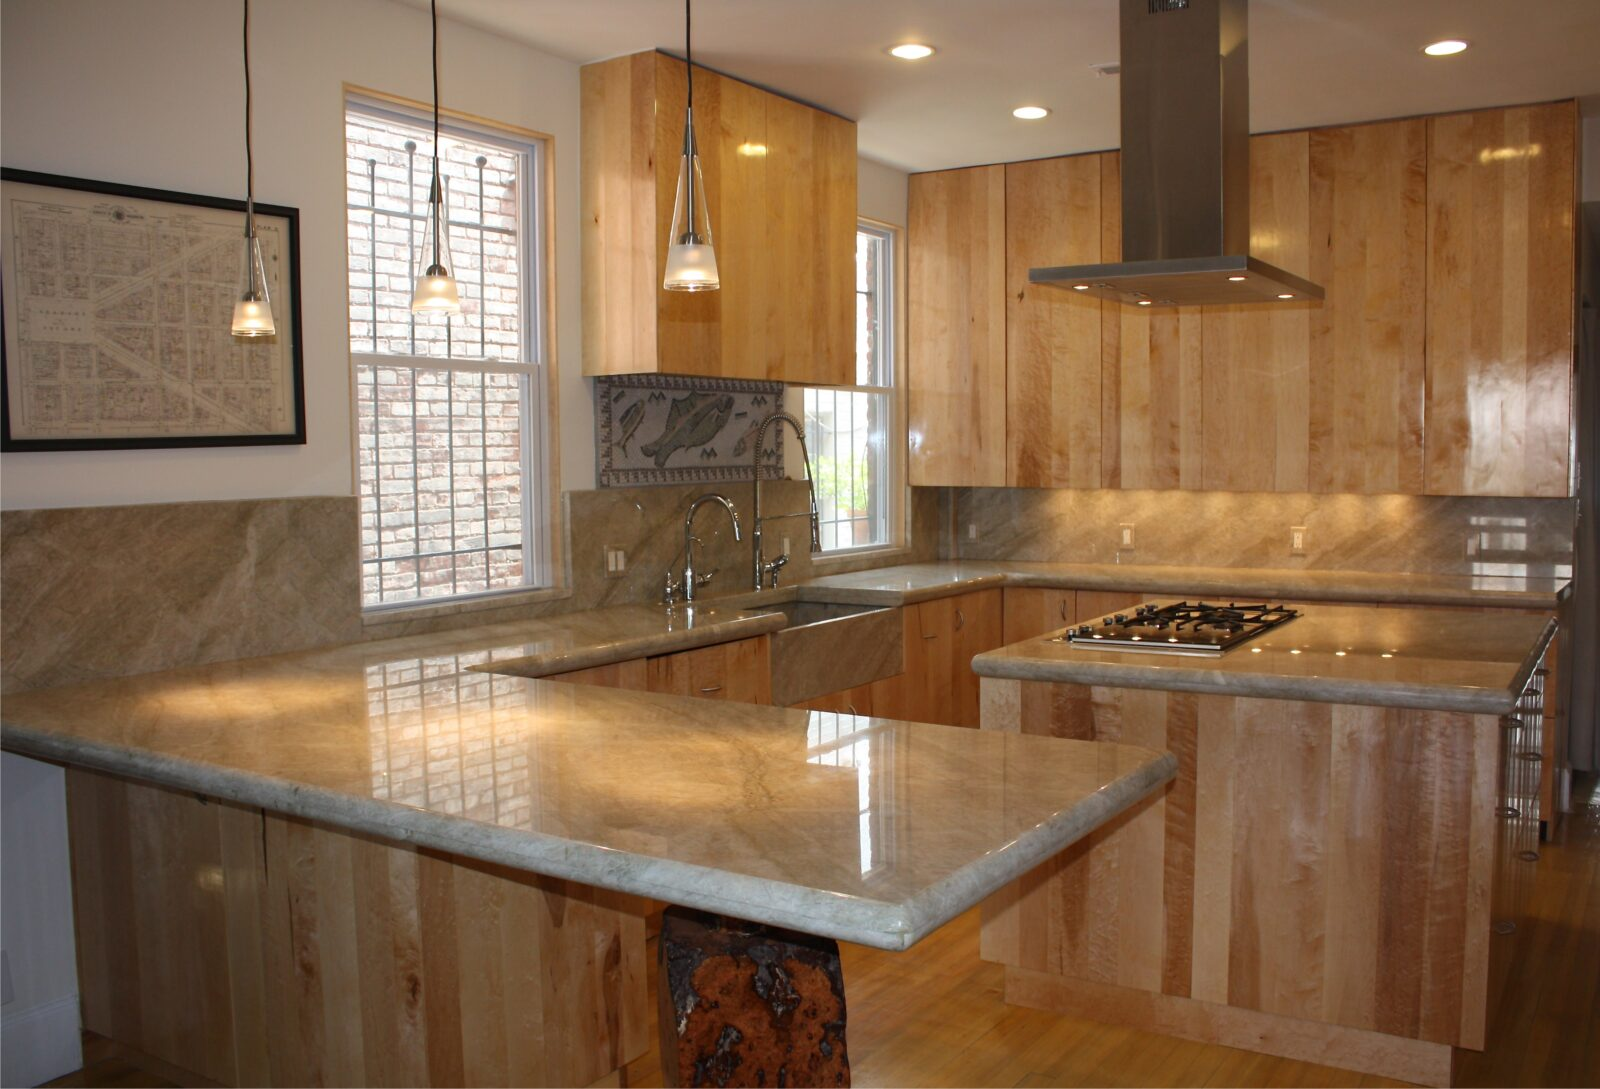 kitchen bathroom counter tops kitchen countertop tile Countertops Best Kitchen